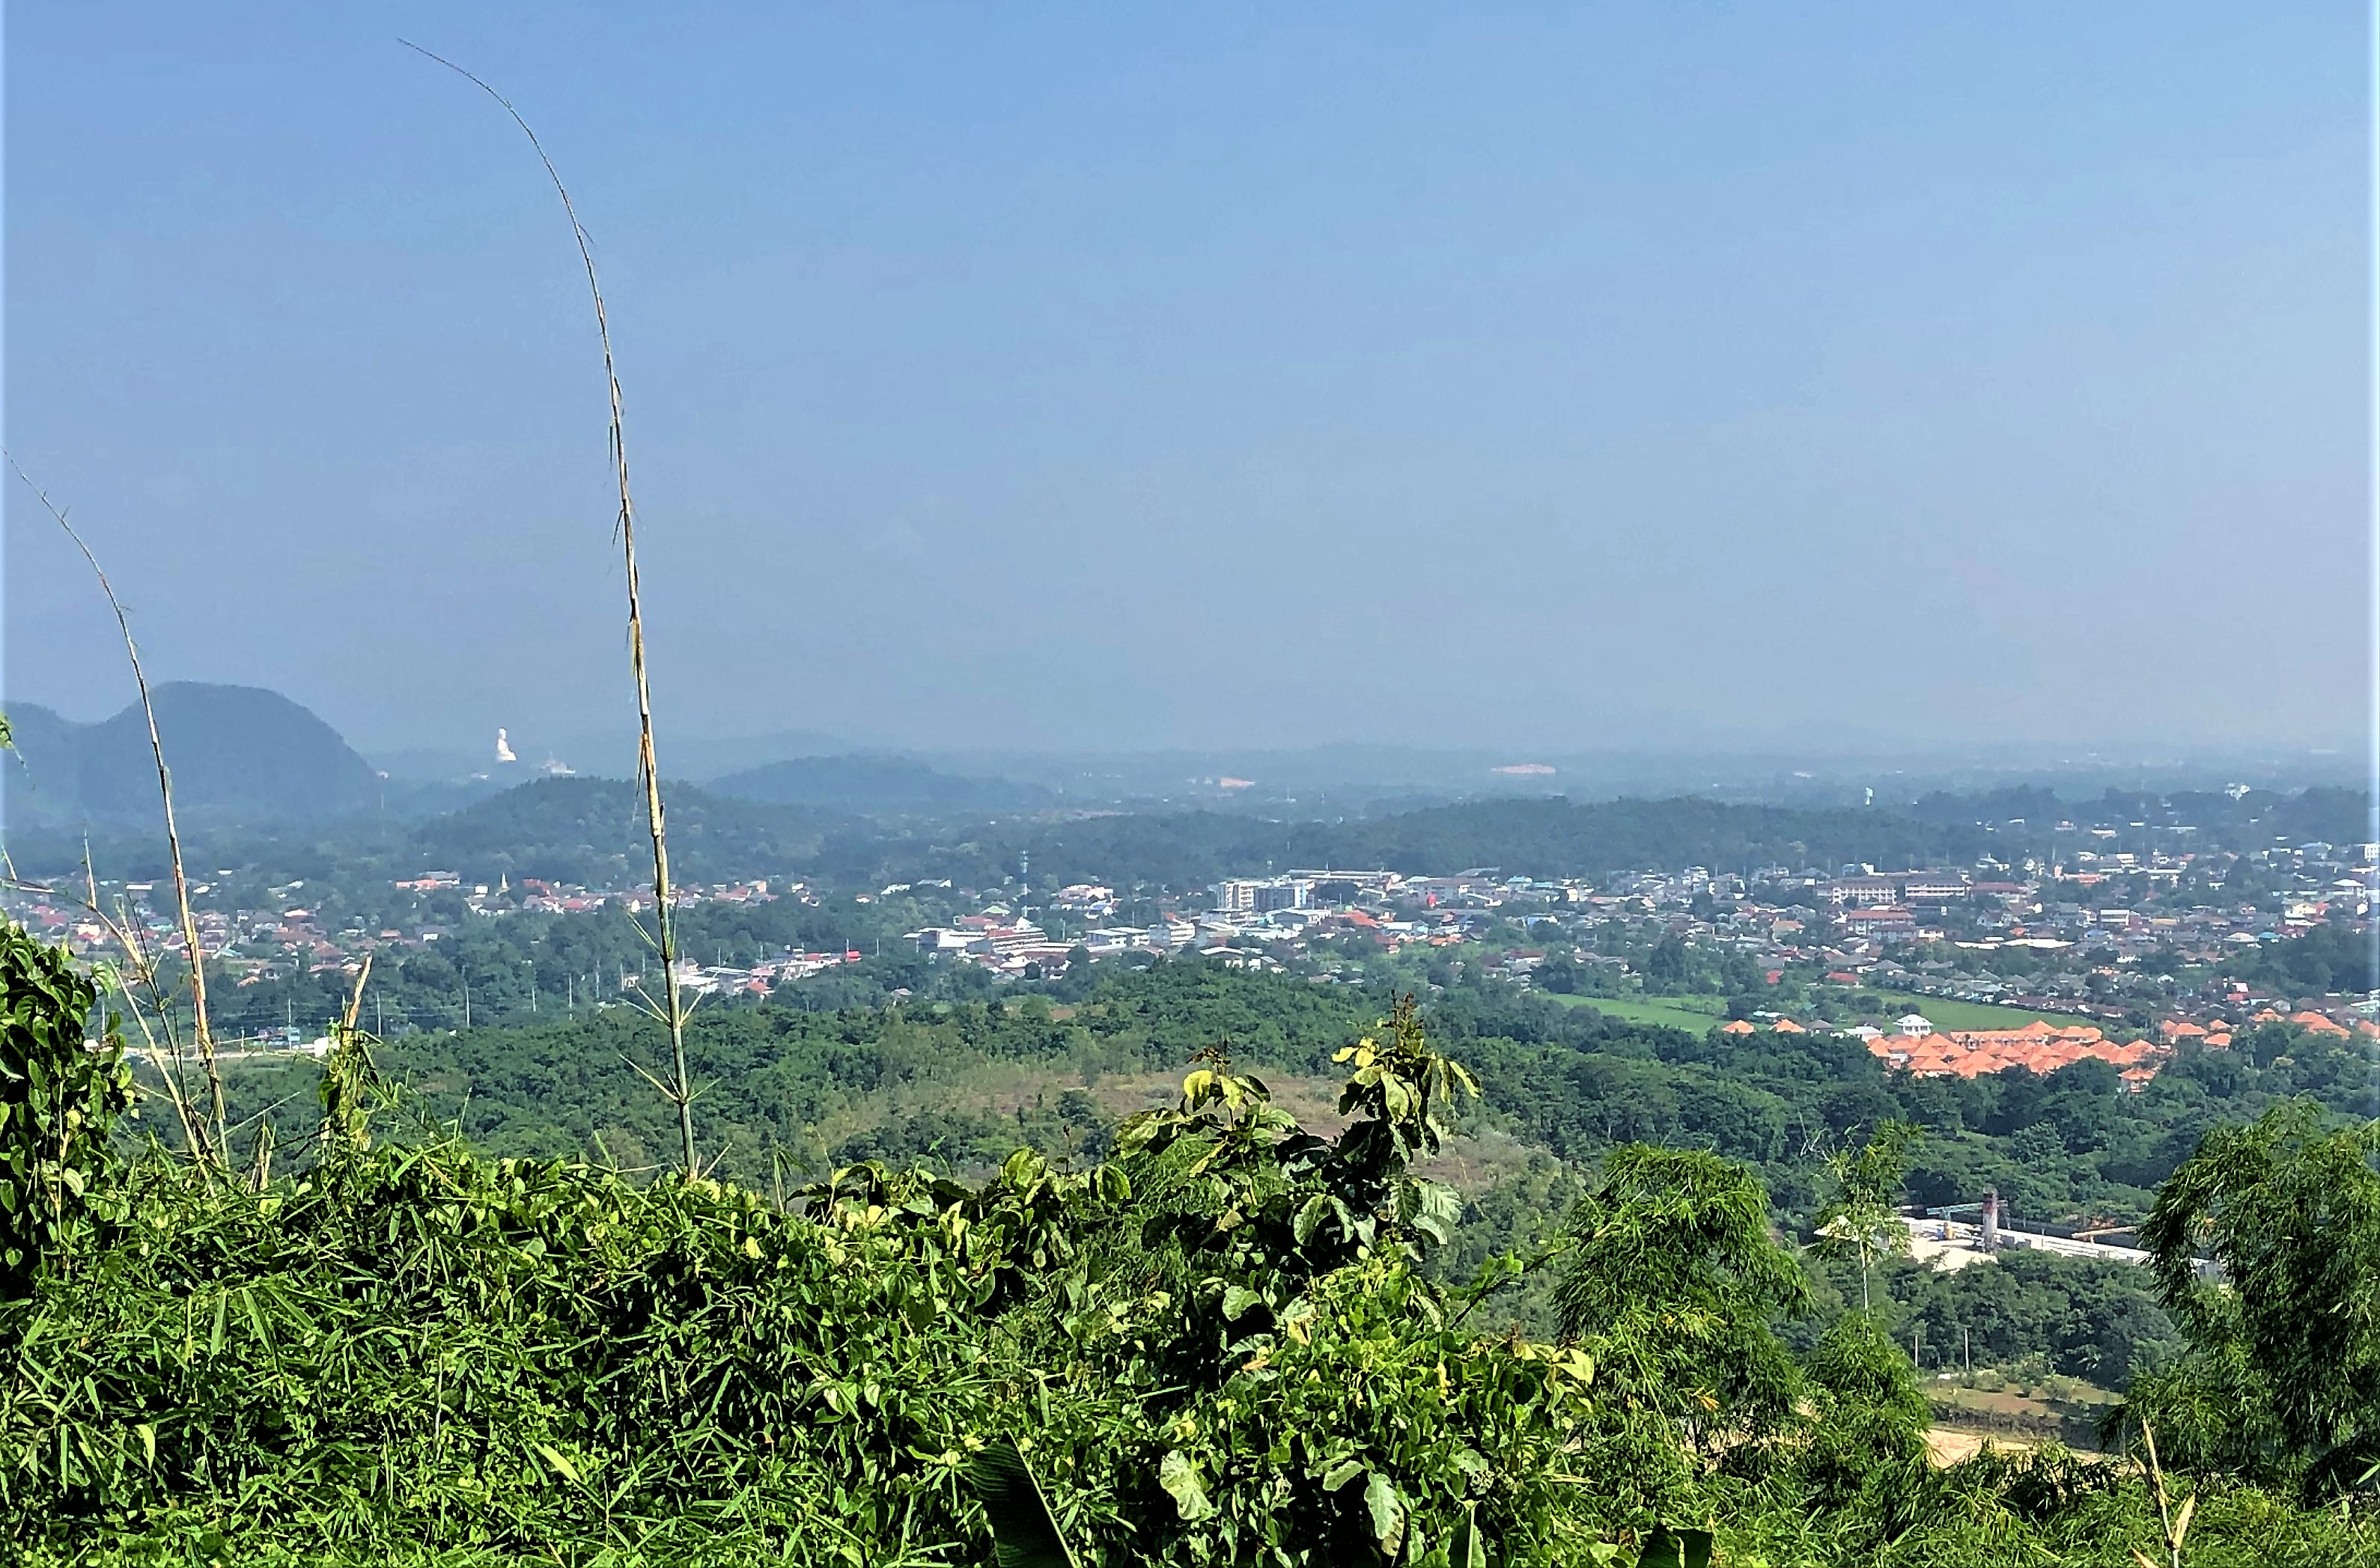 The view of Chiang Rai and the mountains beyond from the new Sihuhata temple at Wat Phra That Doi Khao Kwai